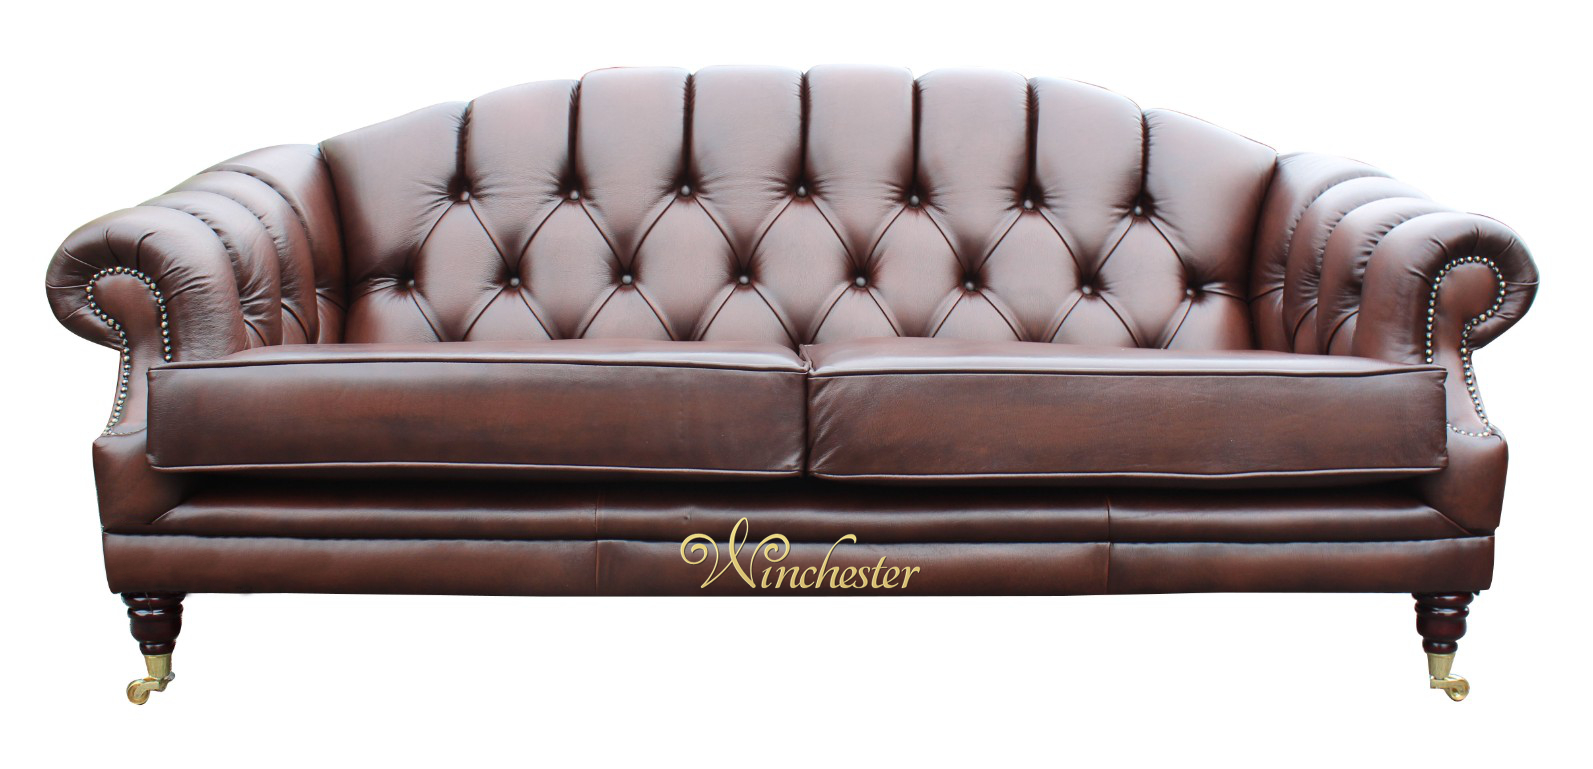 Victoria 3 Seater Chesterfield Leather Sofa Settee Antique ...